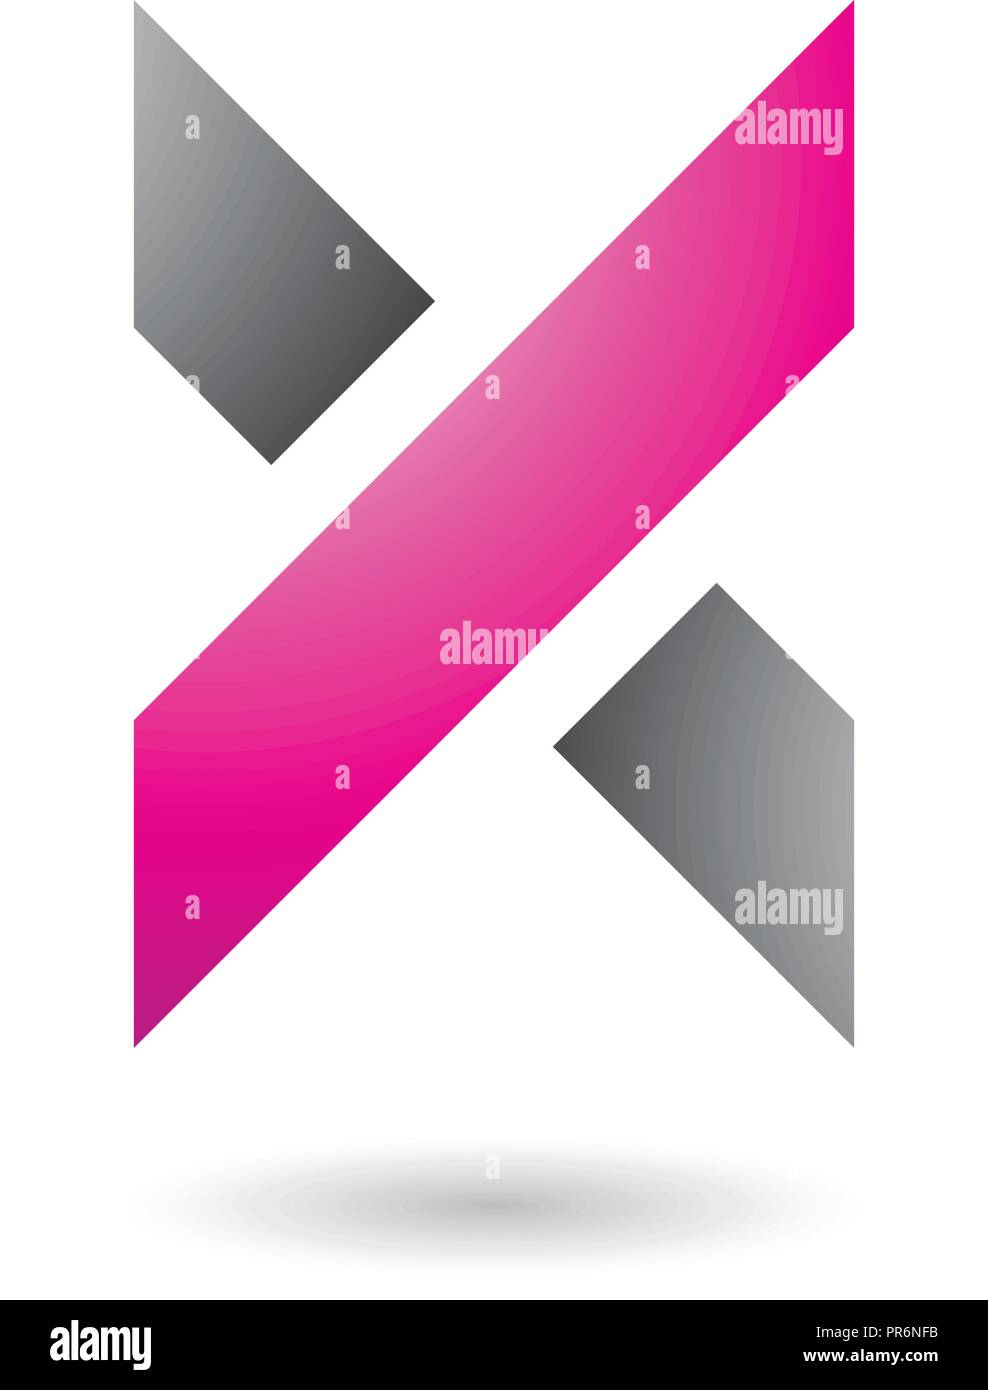 Vector Illustration of Magenta and Grey Thick Shaded Letter X isolated on a White Background - Stock Image